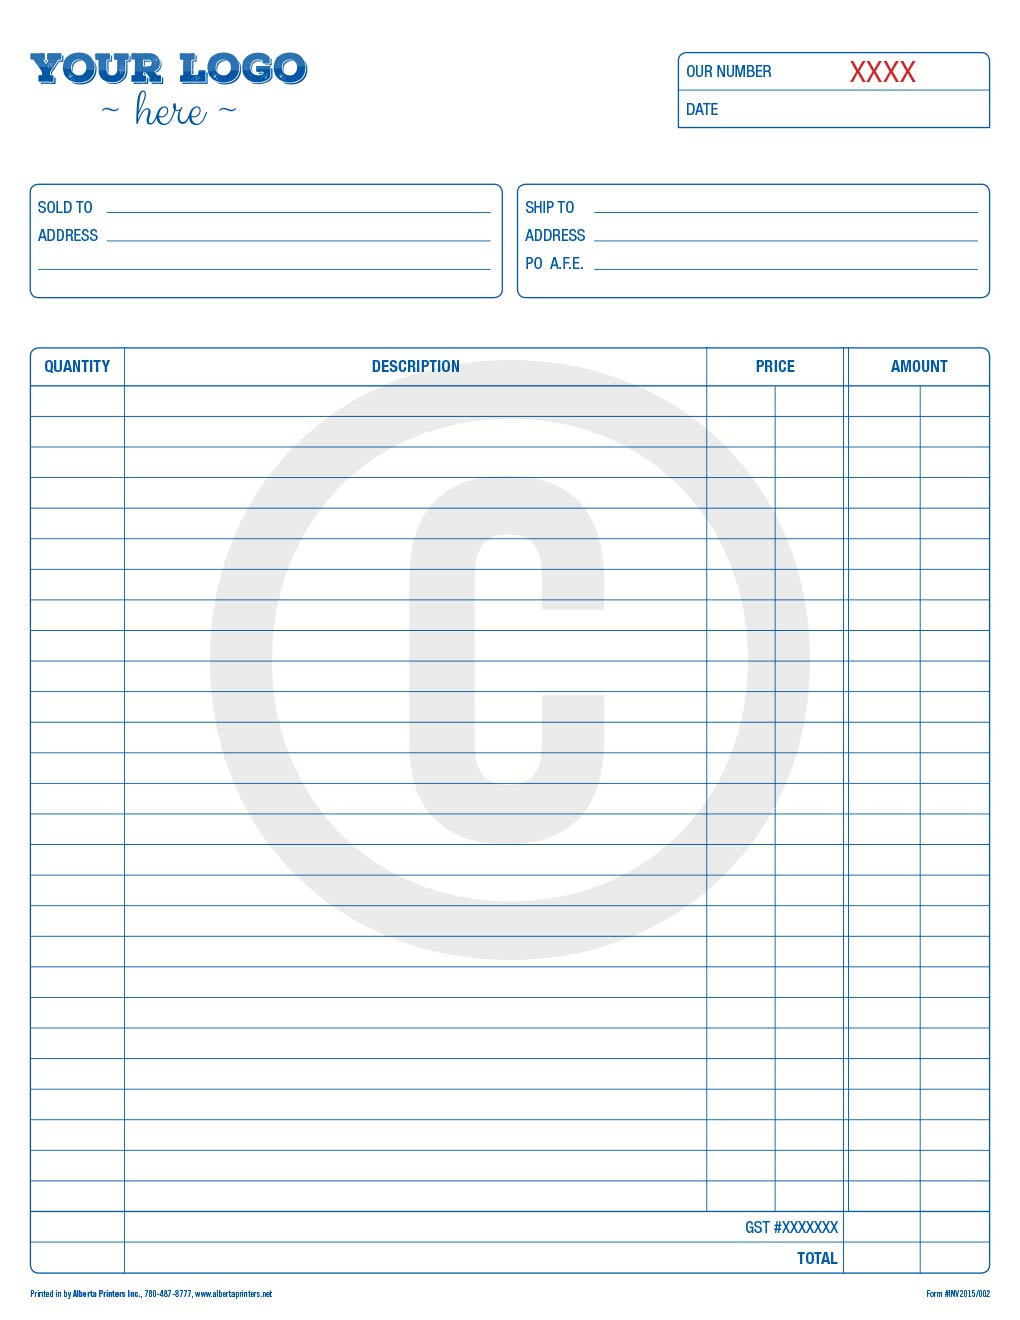 forms printing and designing - alberta printers inc., Invoice examples